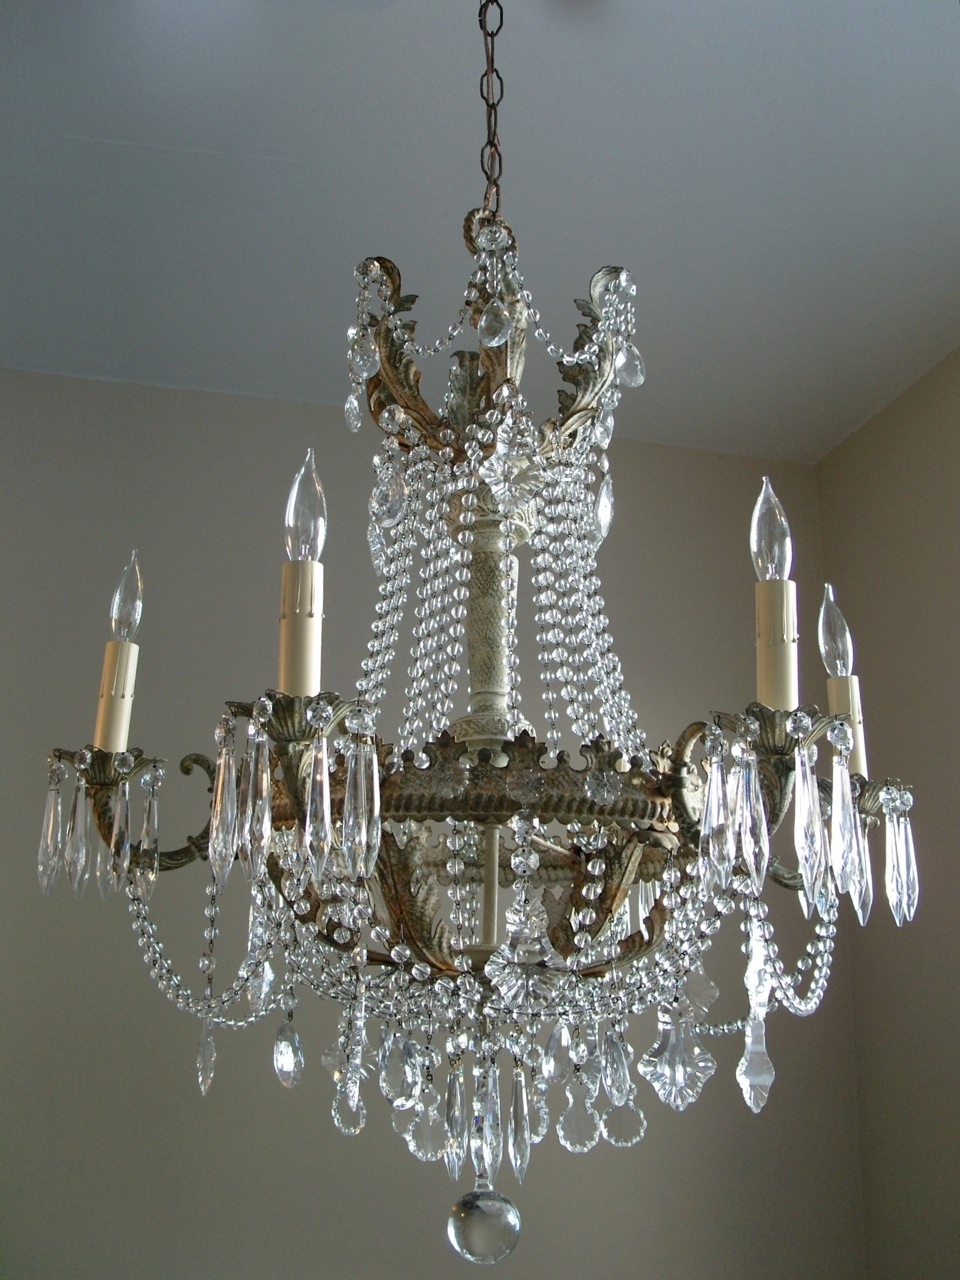 Amazing Country Chic Chandelier 21 Home Decoration Ideas With With Country Chic Chandelier (Image 6 of 15)